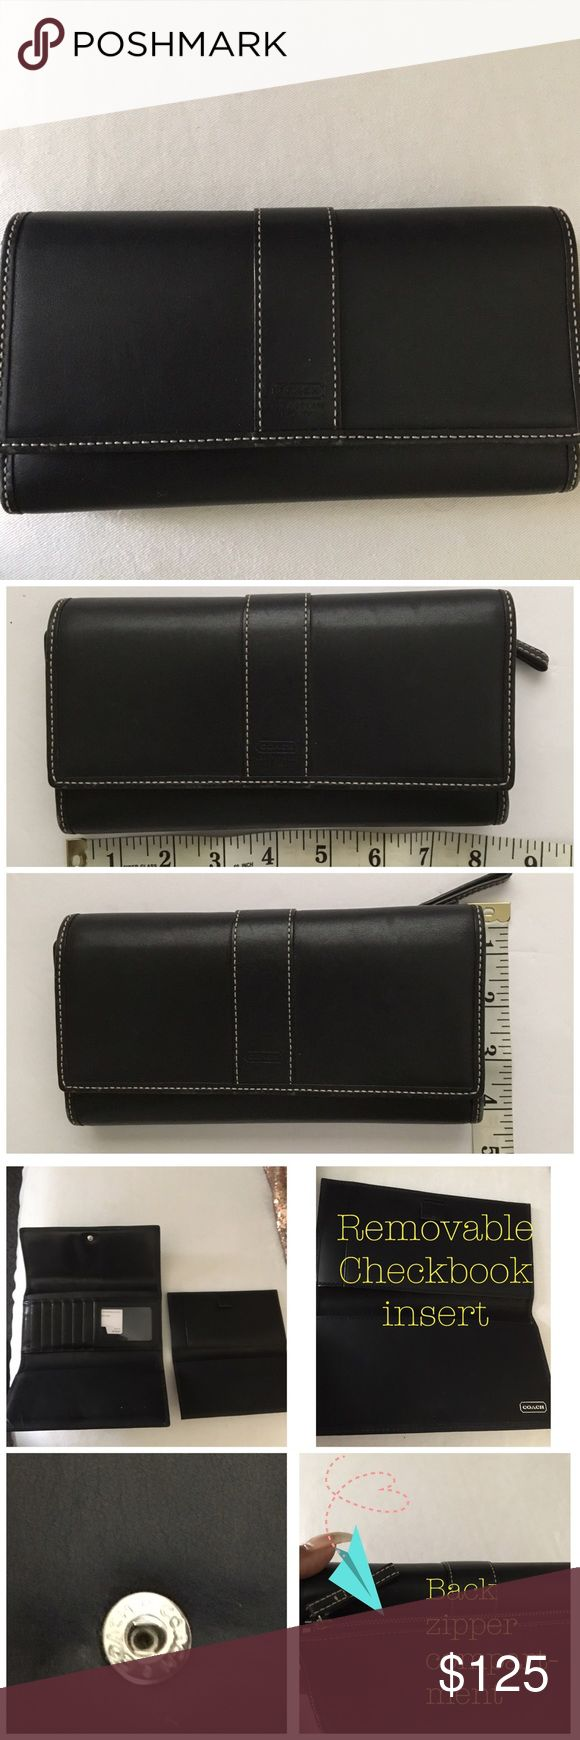 Coach Wallet NWT Coach Wallet.  Removable checkbook cover pls check out coach leather handbag if purchased together you will receive a discount! Coach Bags Wallets